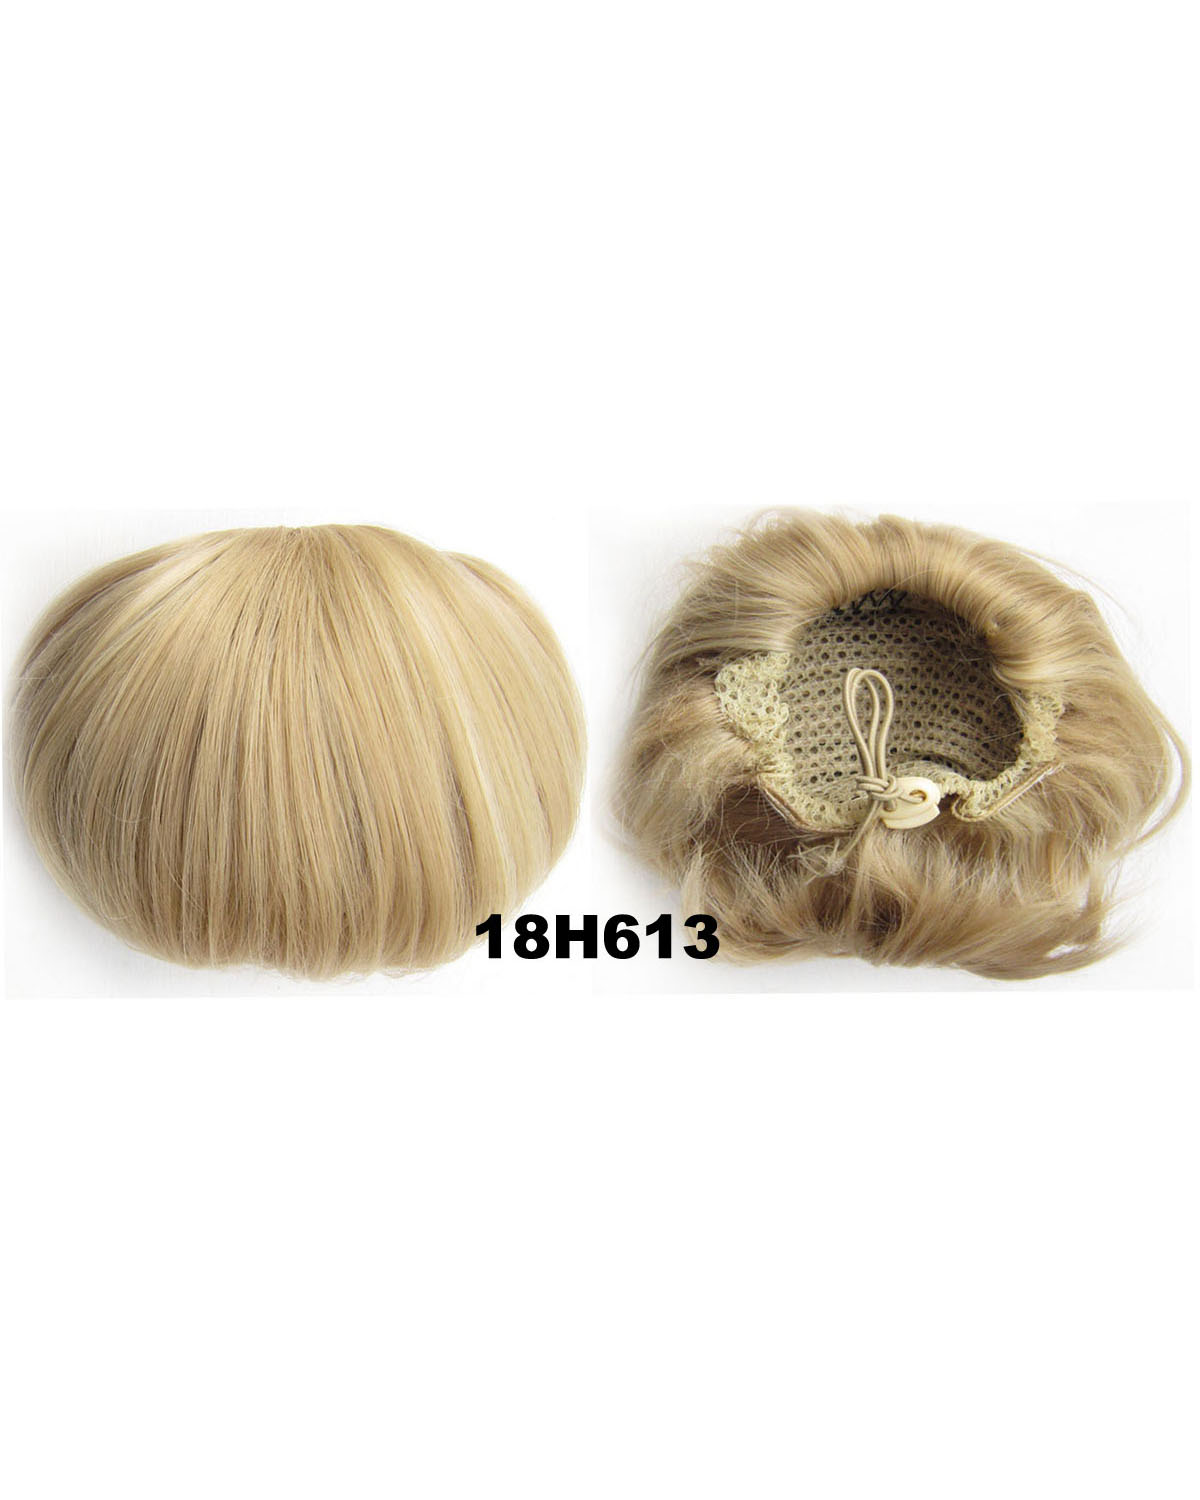 Ladies Clean and Neat Straight Short Hair Buns Drawstring Synthetic Hair Extension Bride Scrunchies 18H613